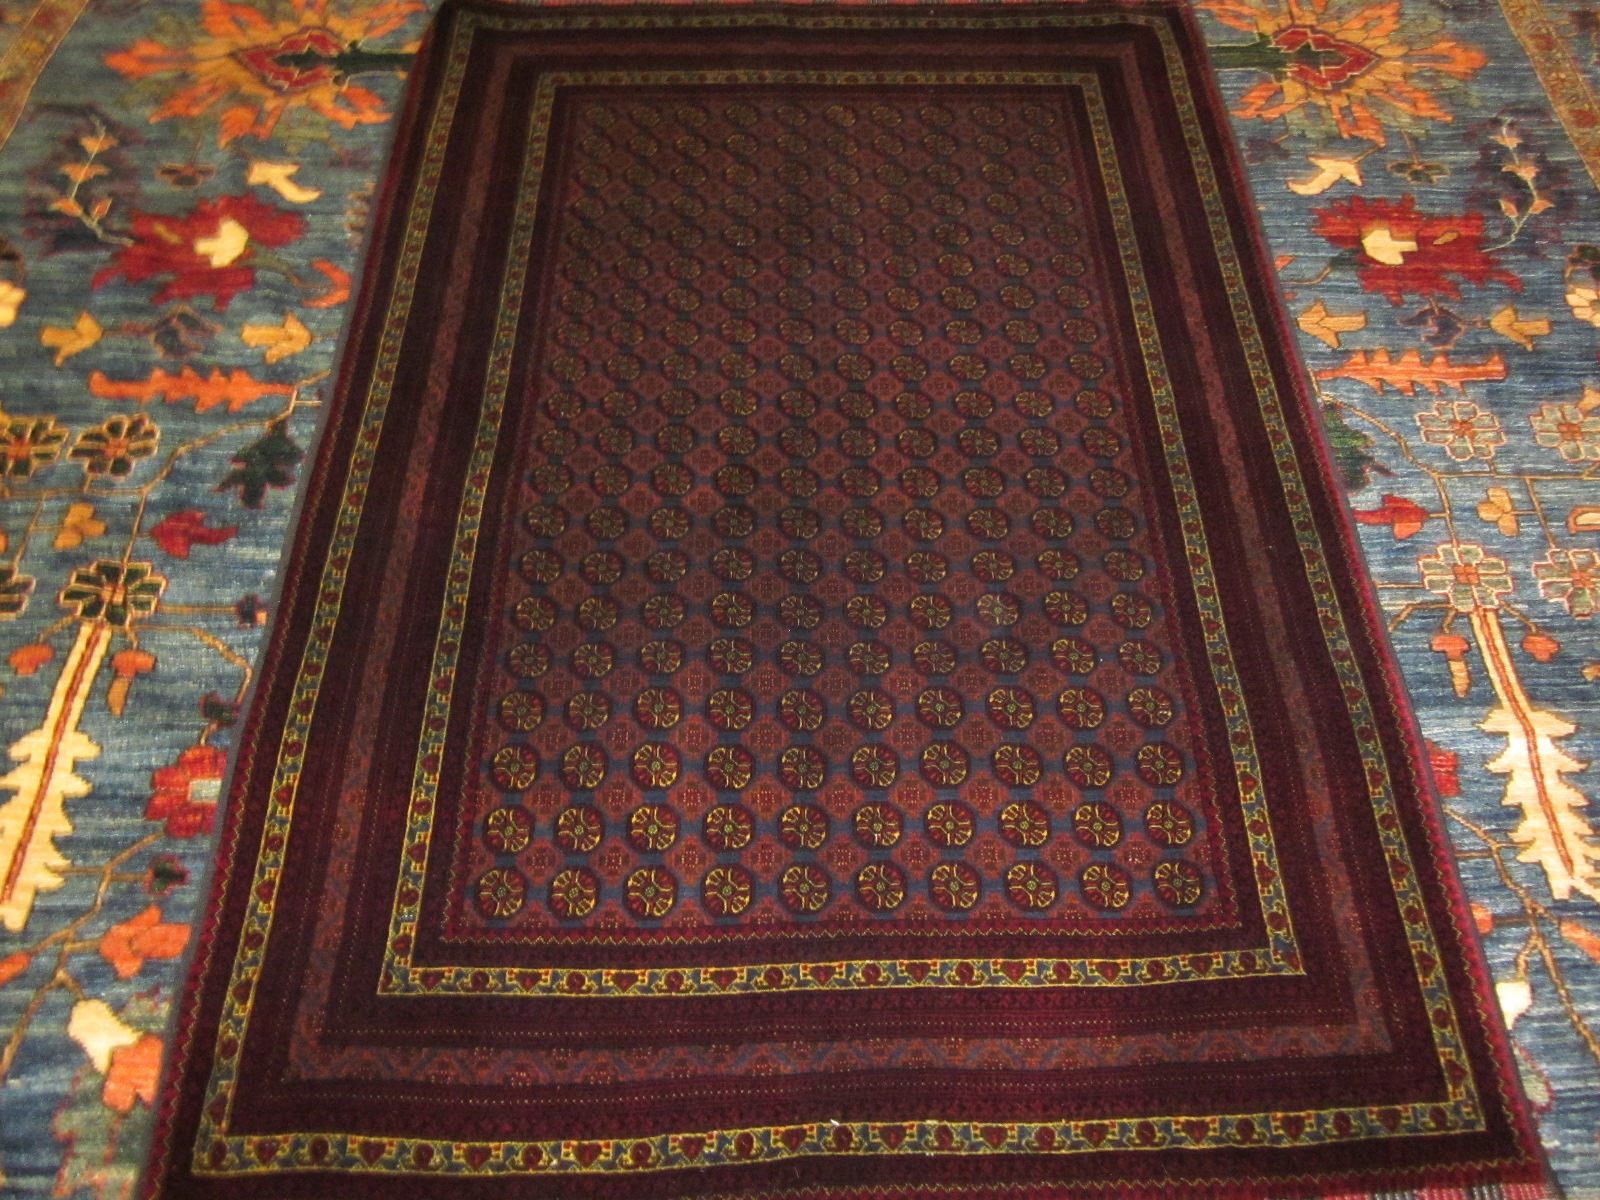 Finely woven Turkoman rug, small piece, 3 x 5 with deep reds and blues. Sold.